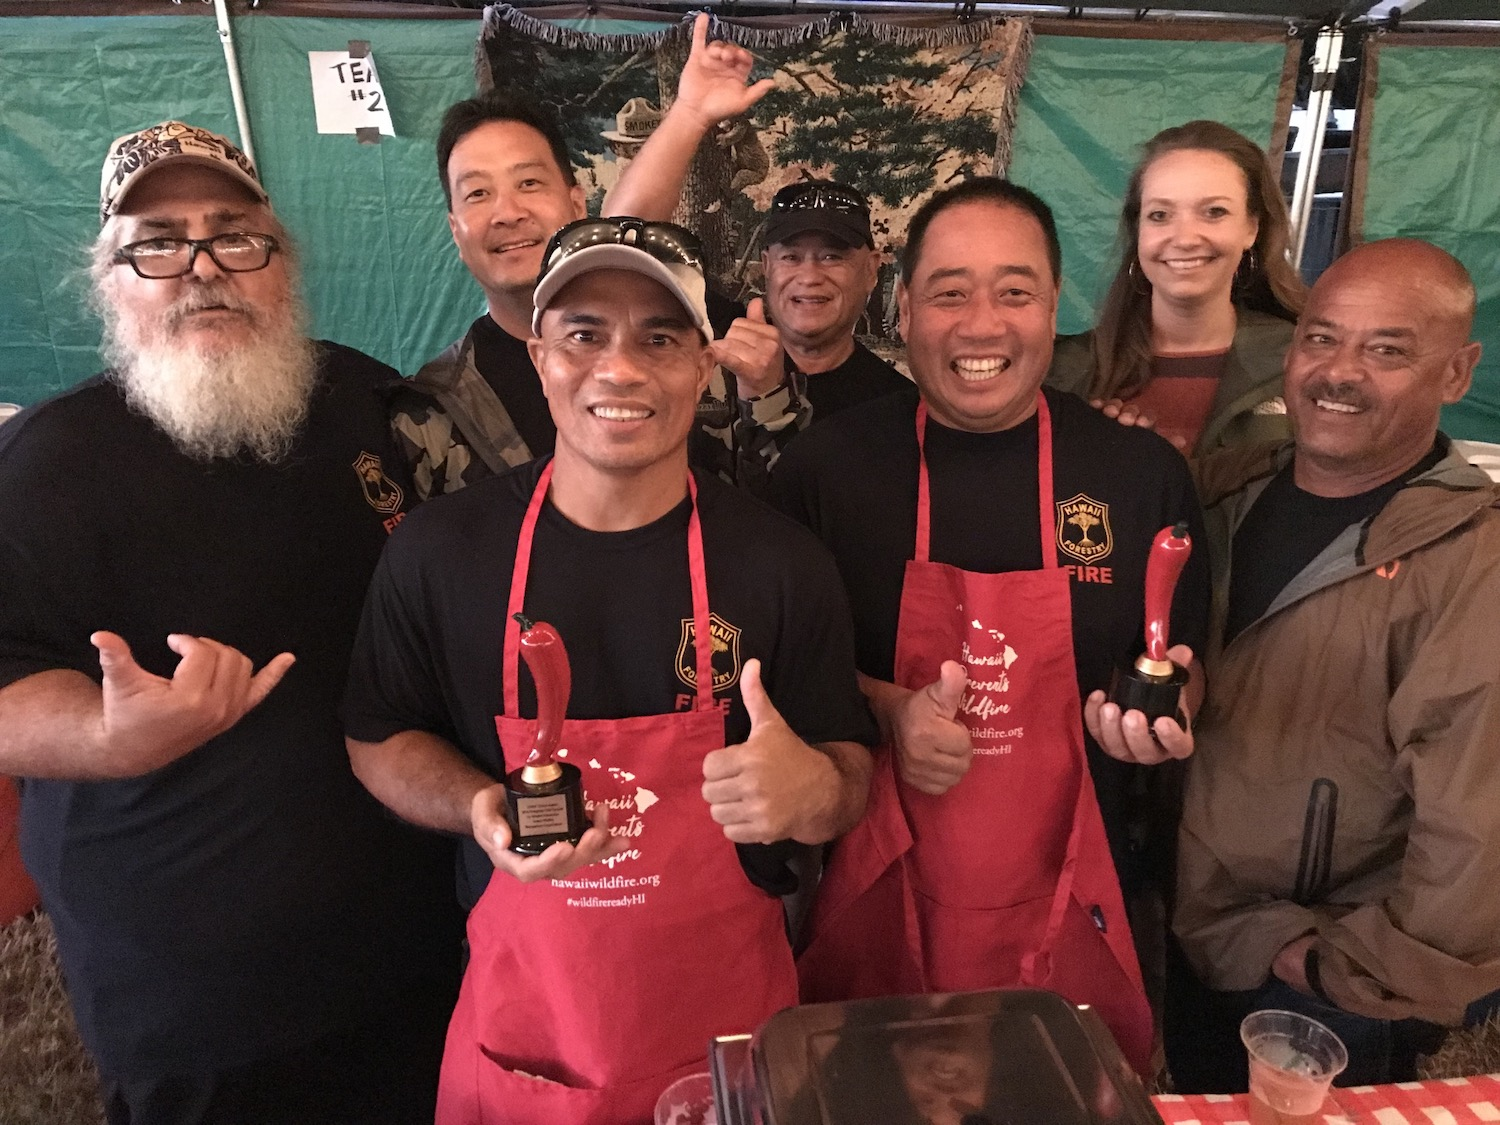 2nd Annual Firefighter Chili Cookoff for Wildfire Prevention_11_3_2018_53 copy.JPG